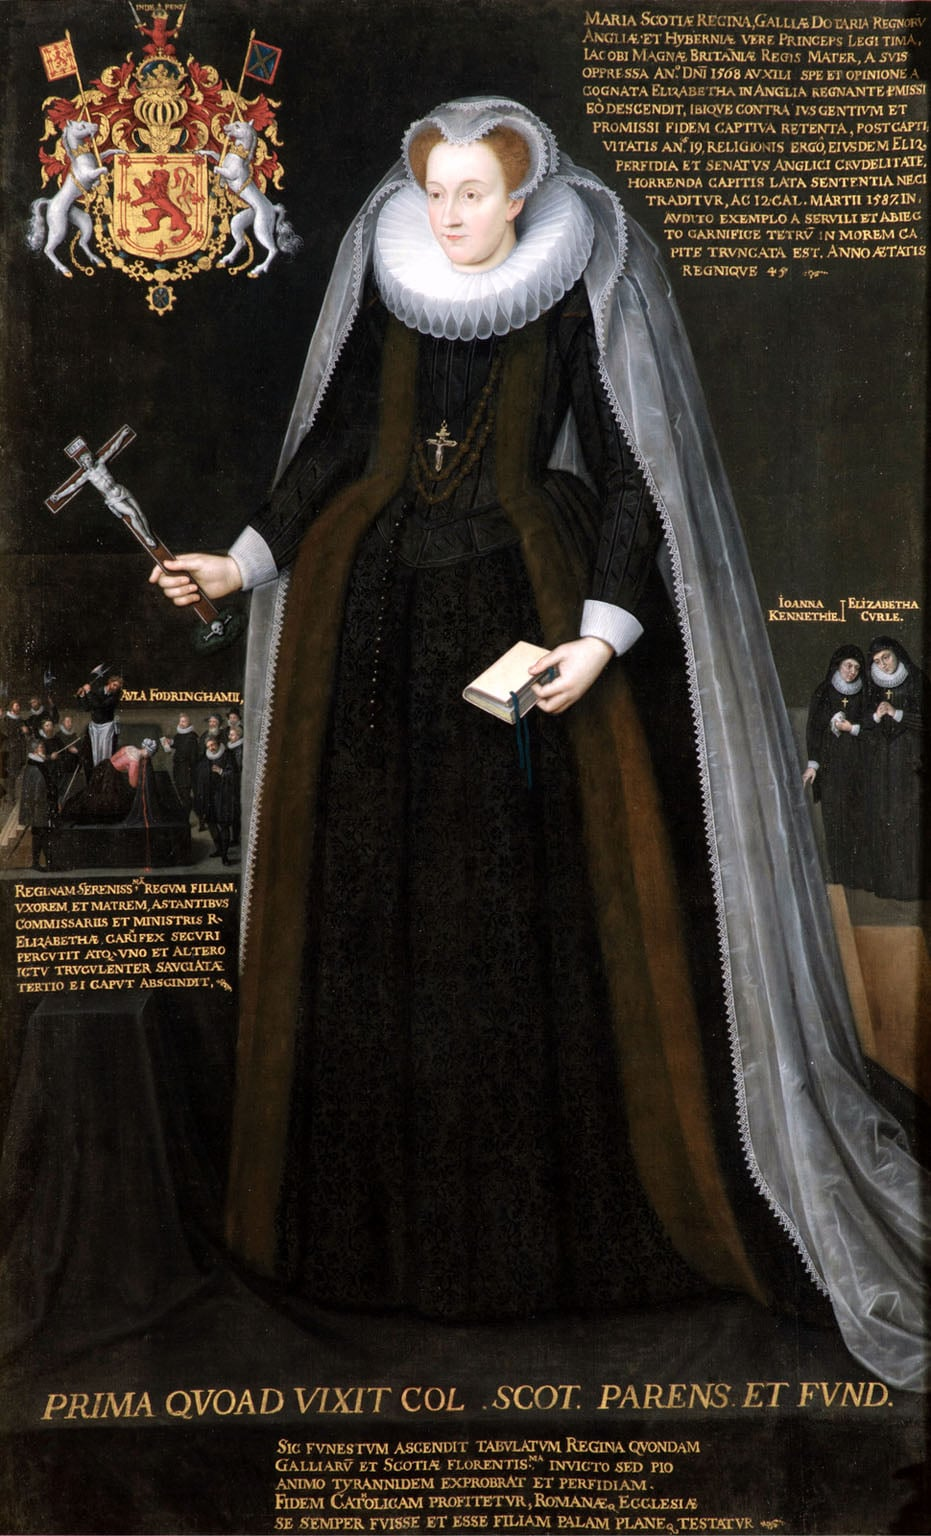 3. Mary Queen of Scots, National Museum of Scotland - Flemish School, Blairs Memorial Portrait of Mary, Queen of Scots, c.1600